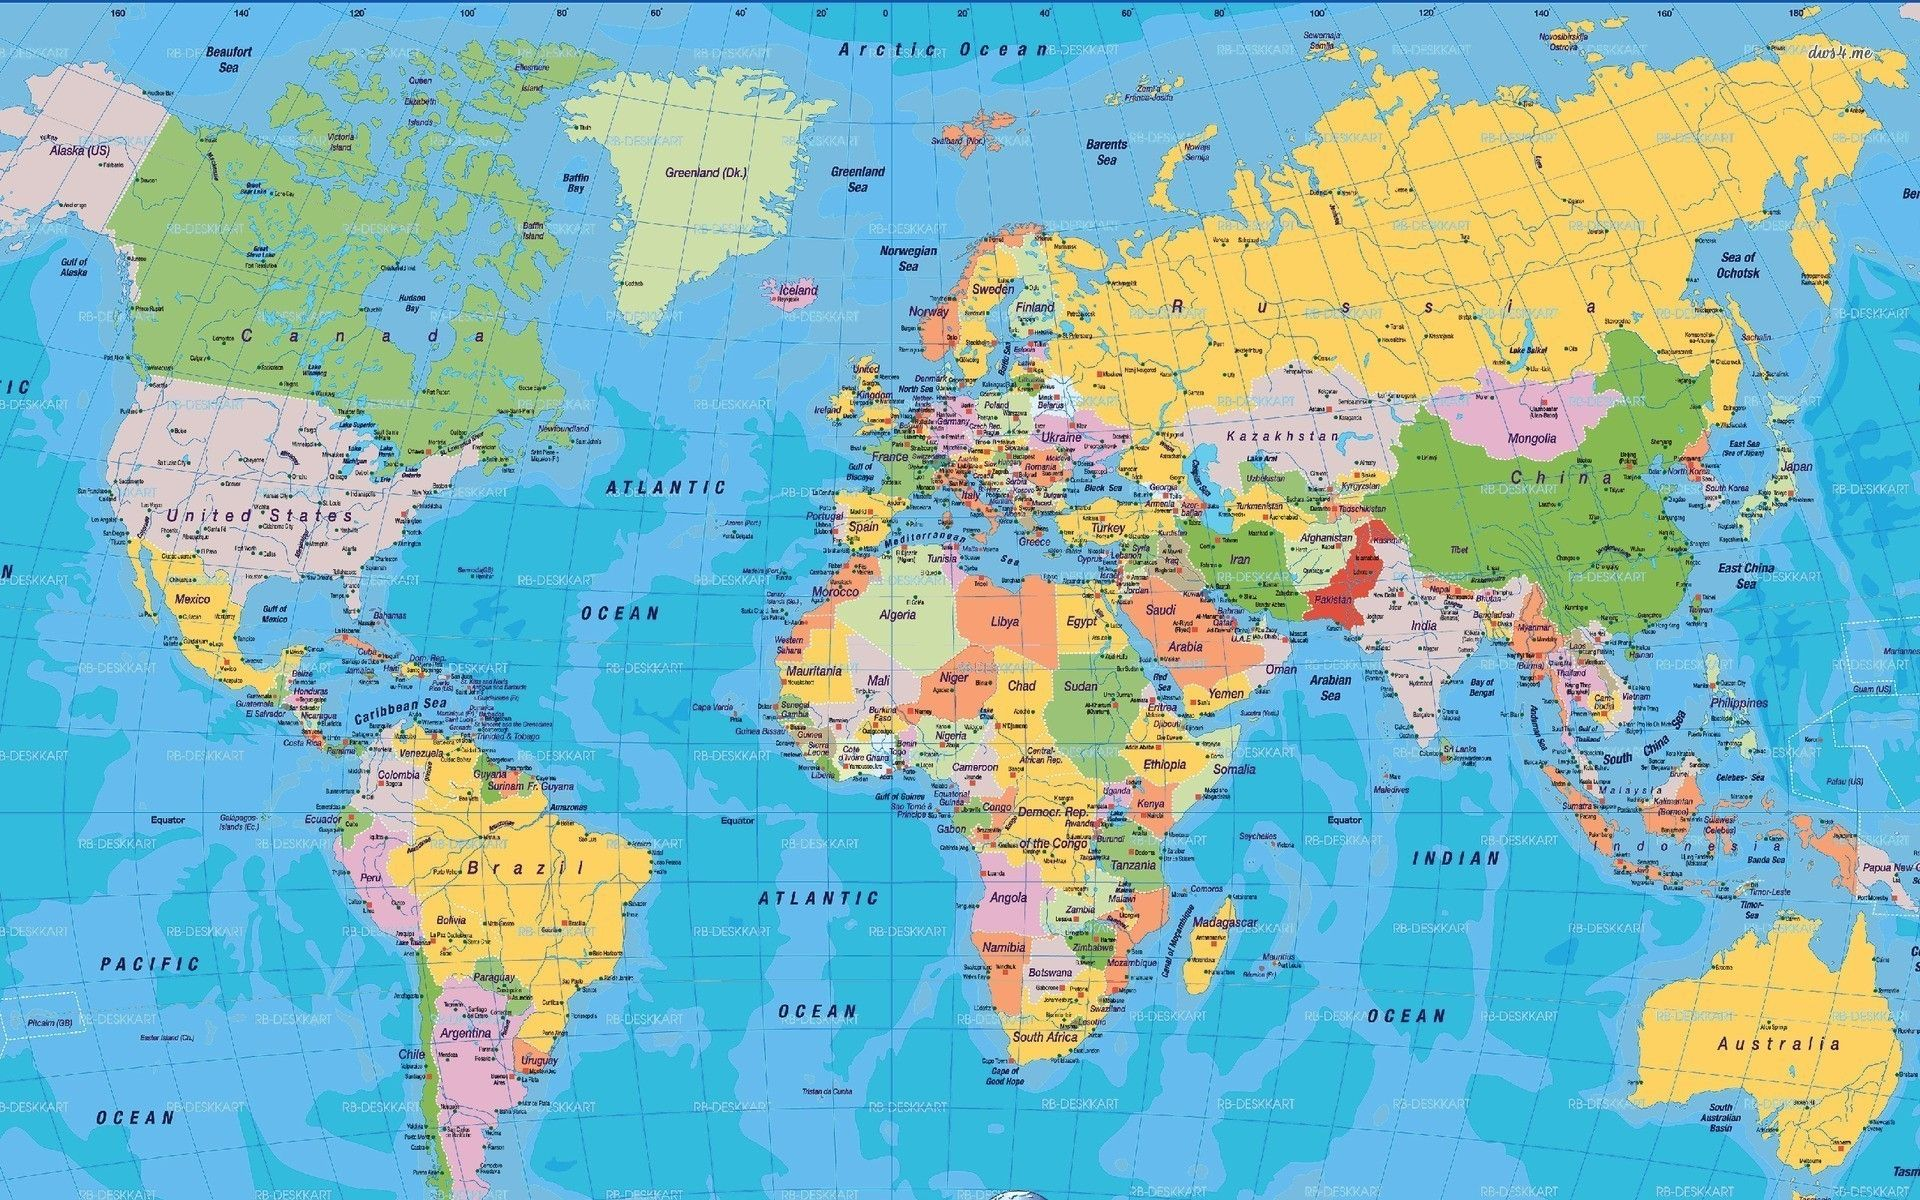 The New Map Of The World.3d World Map Hd Wallpaper Best Of Map Of The World Hd Wallpaper New